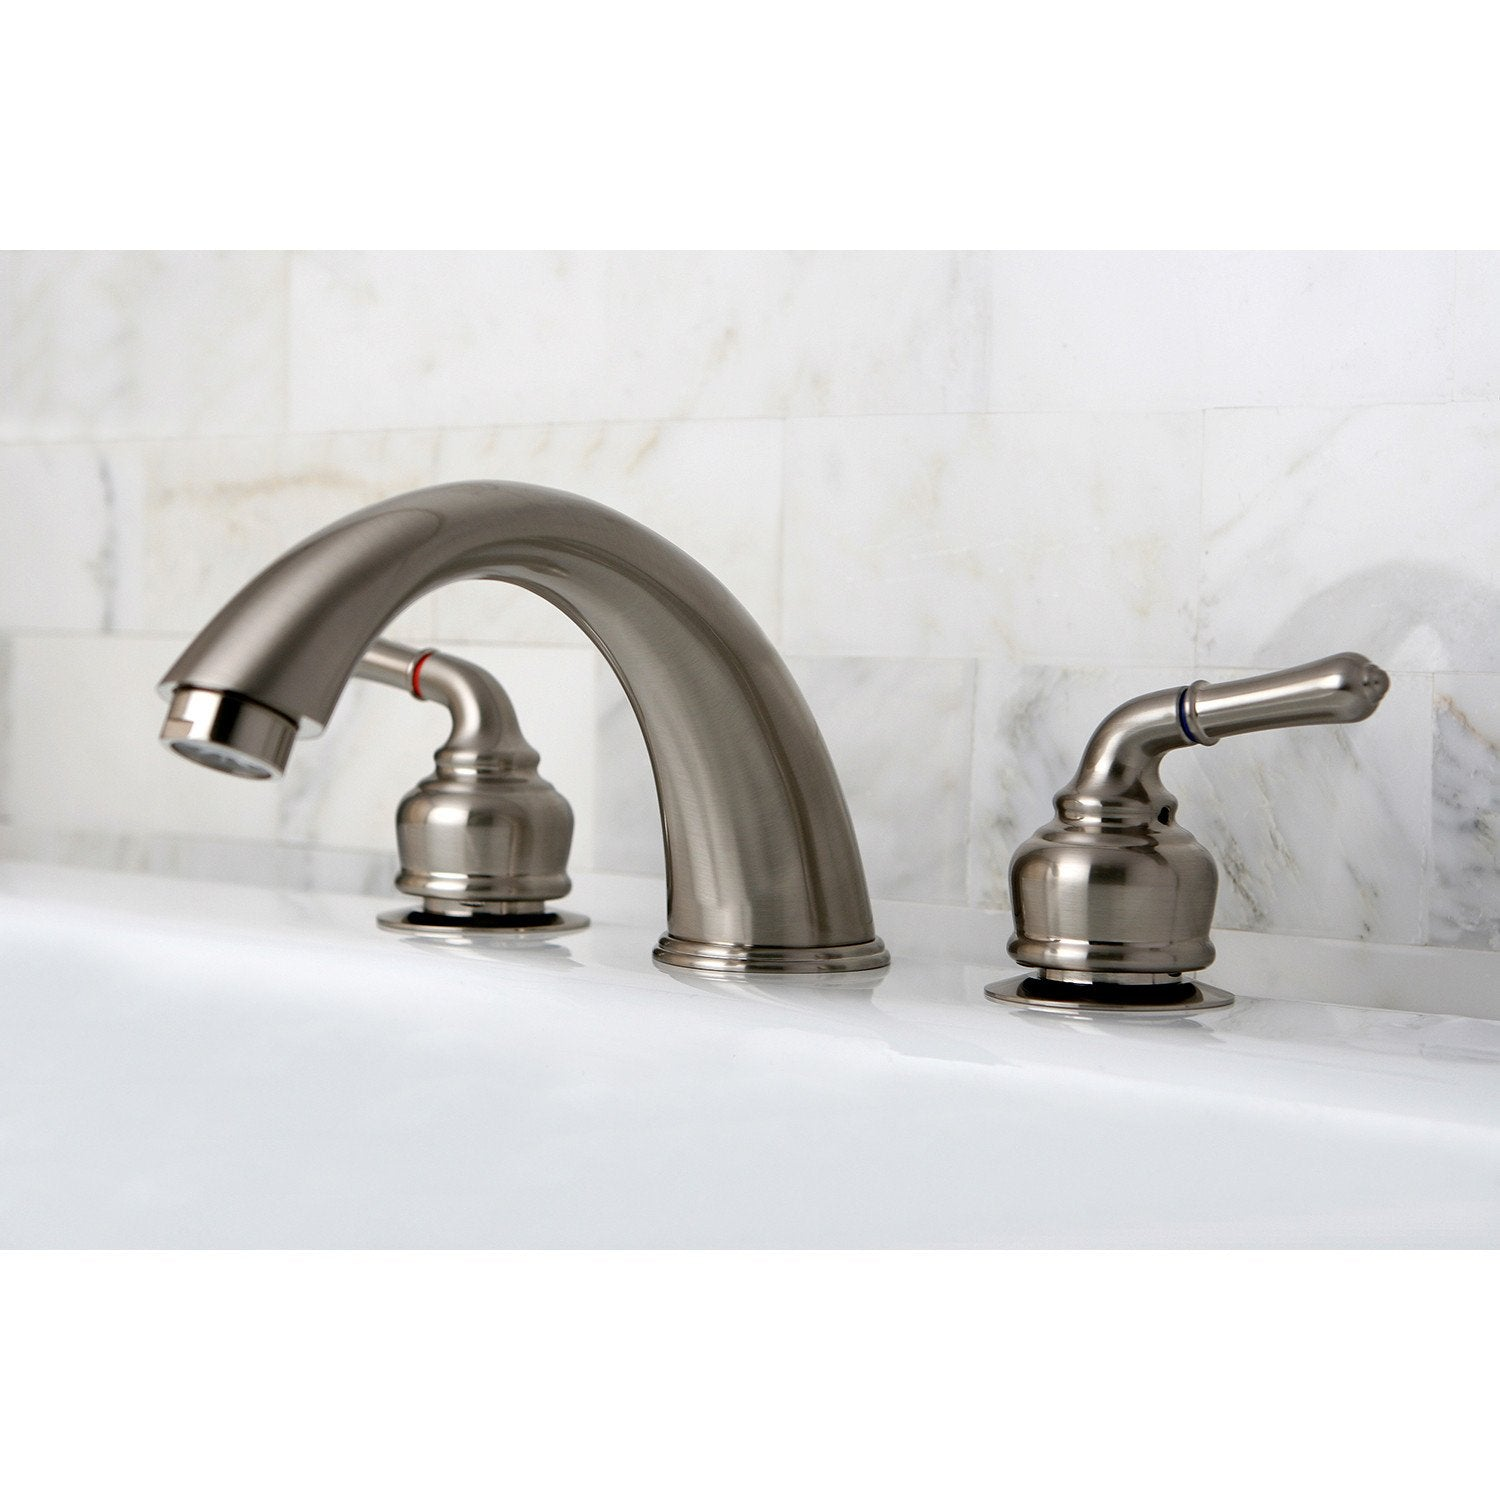 Kingston Brass Satin Nickel Magellan lever handle roman tub filler faucet KC368